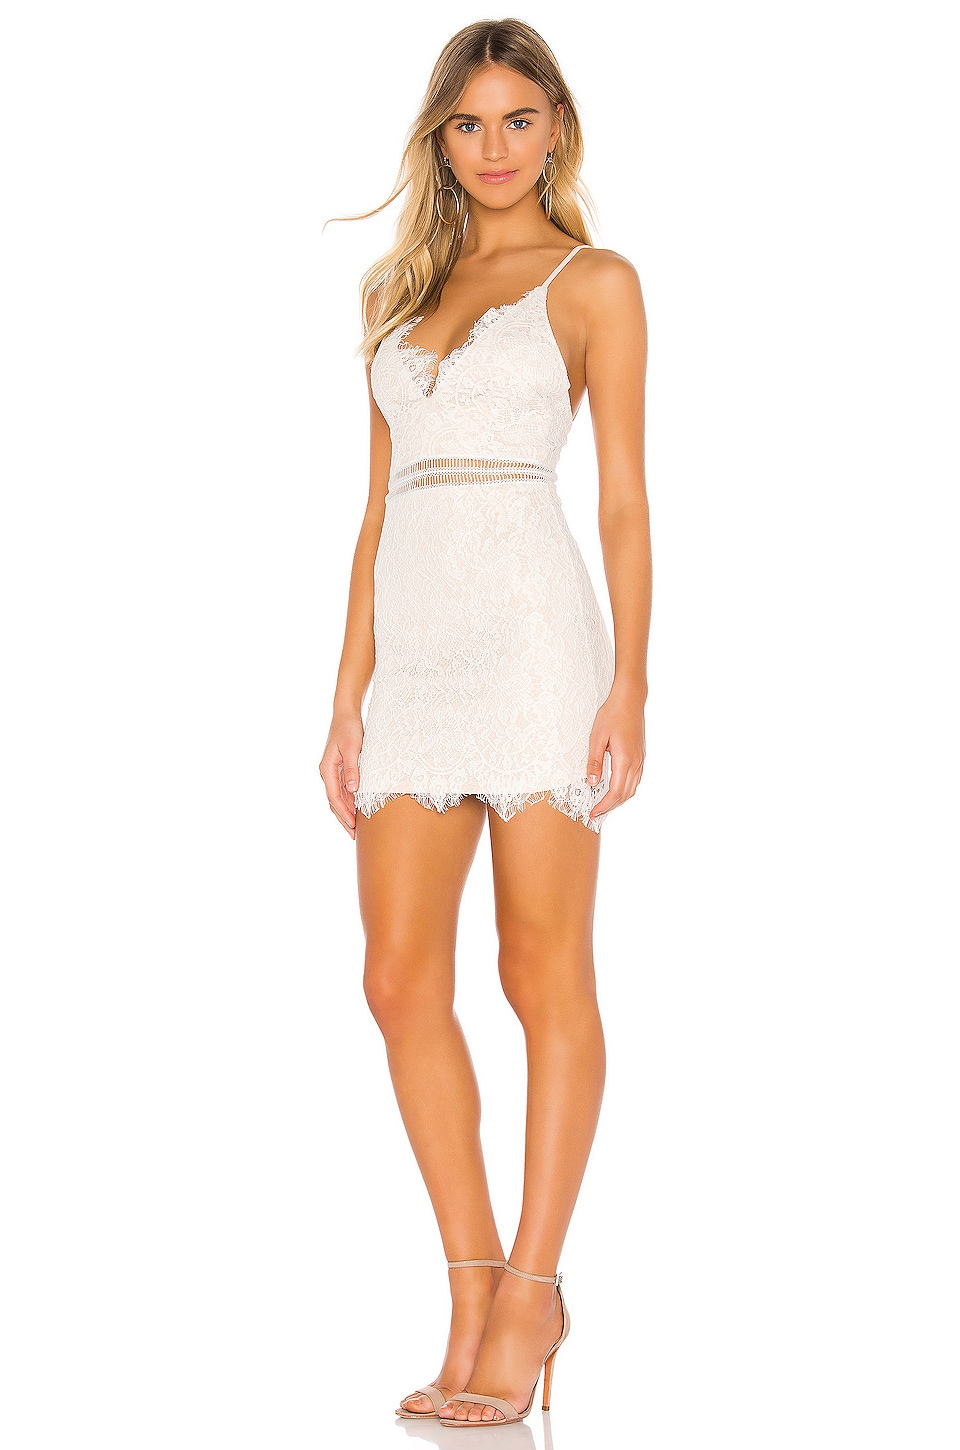 Remi Lace Mini Dress, view 2, click to view large image.